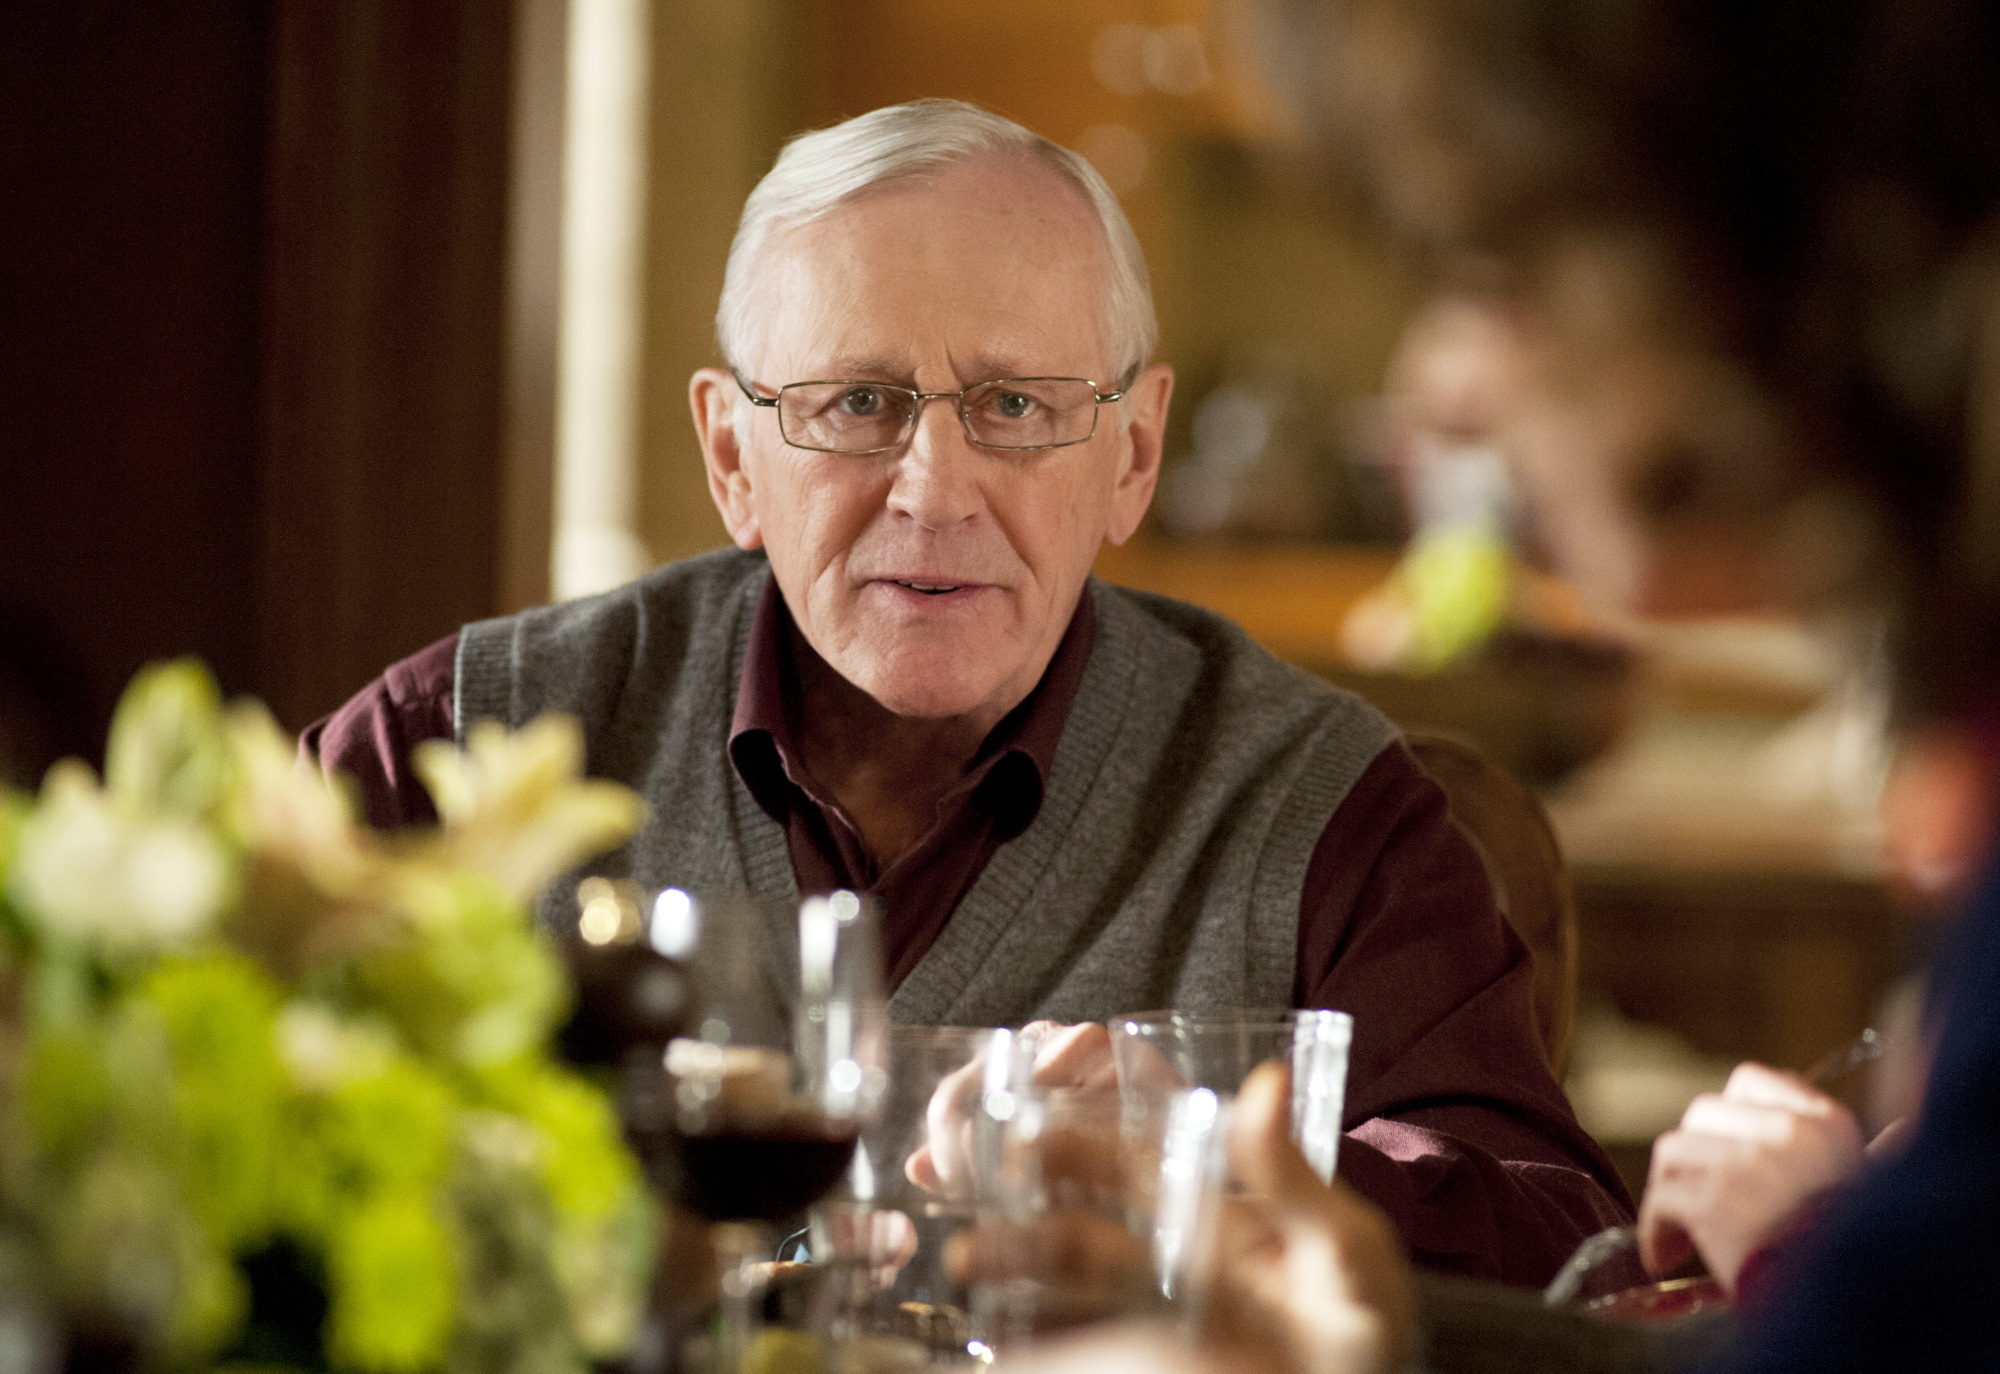 14. Len Cariou has won a Tony Award, a Theater World Award and a Drama Desk Award.